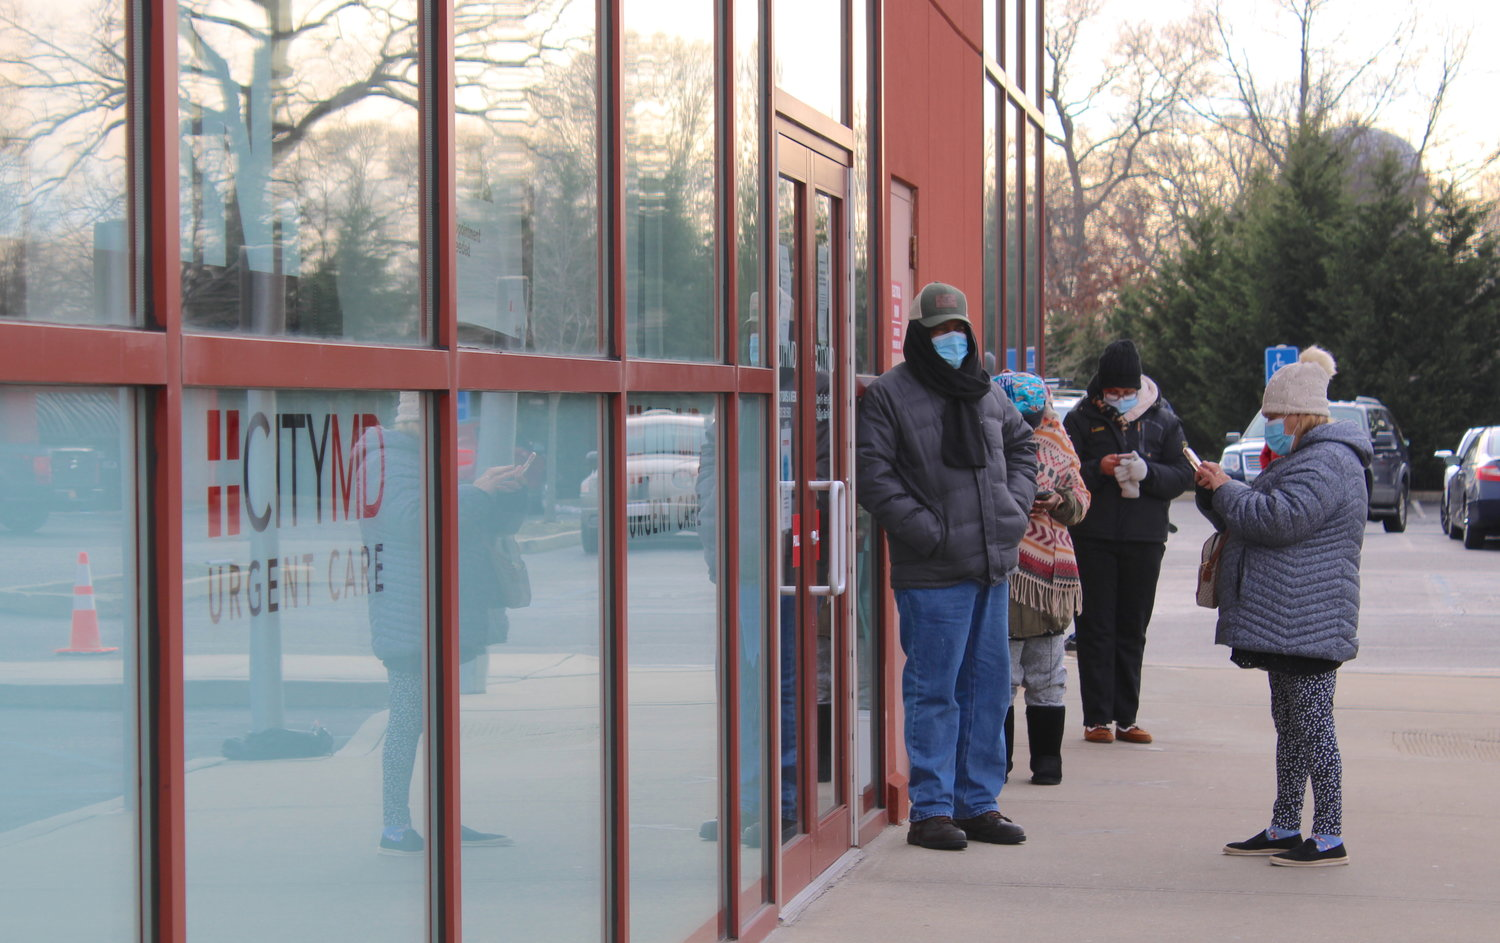 Community members wait in line outside CityMD South Bay Shore Urgent Care on Monday, Jan. 11.